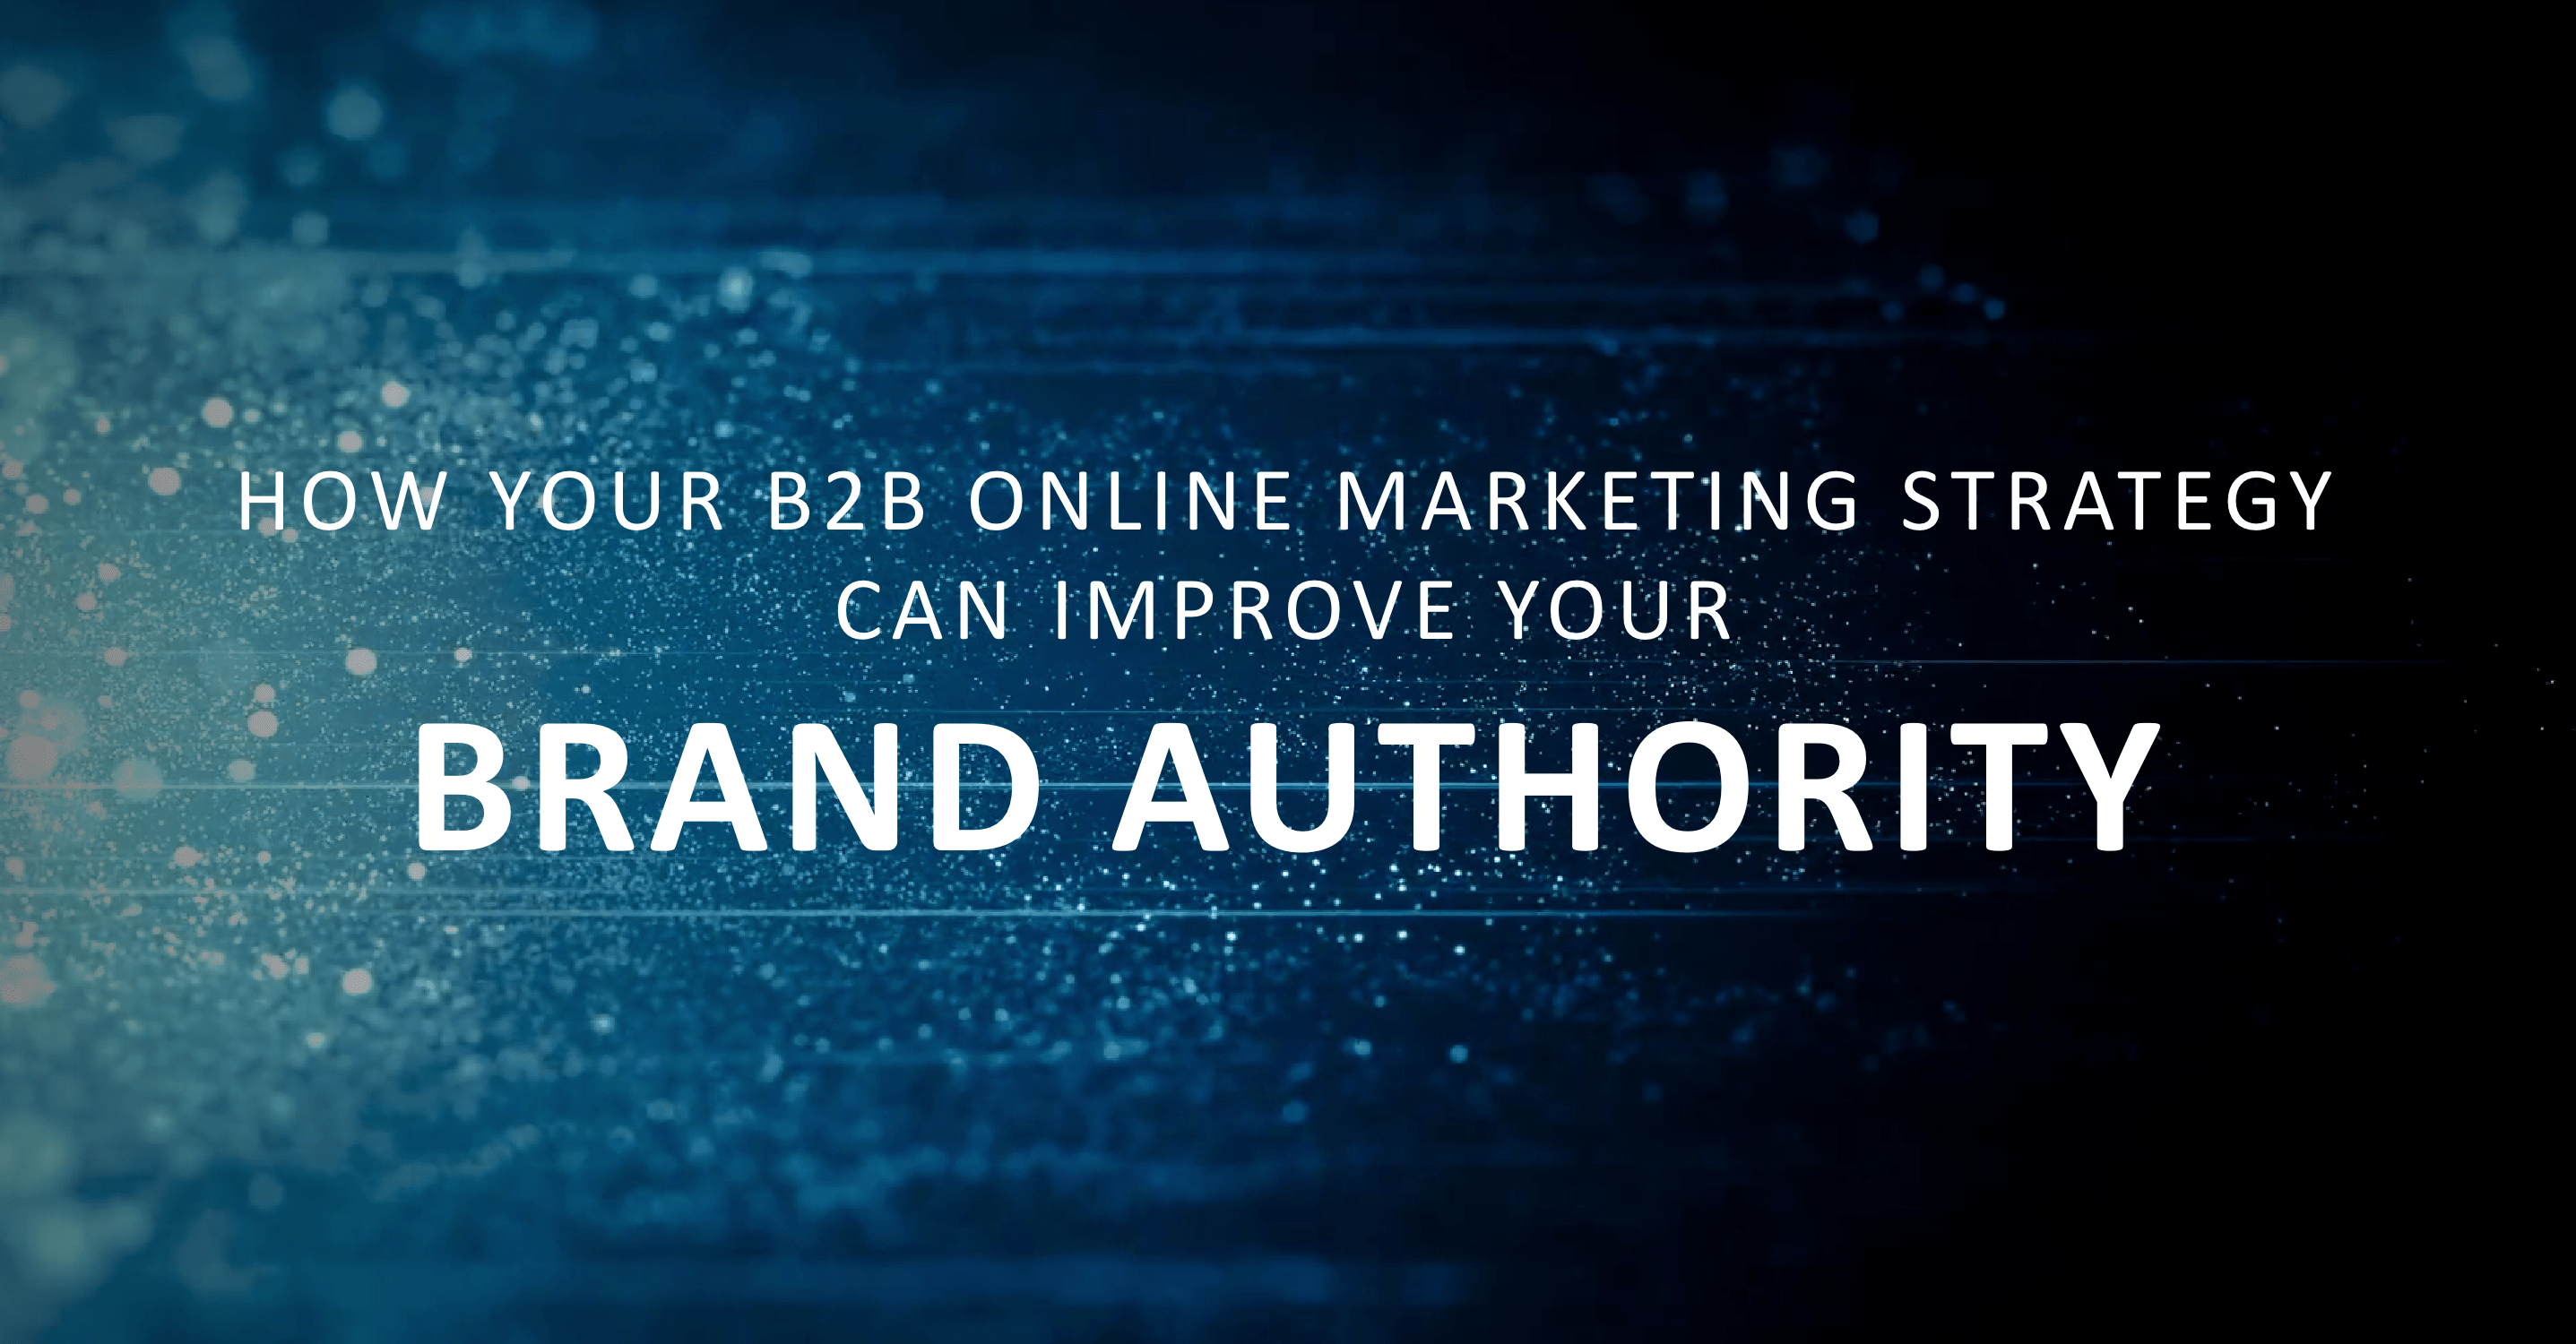 Brand Authority Facebook Cover